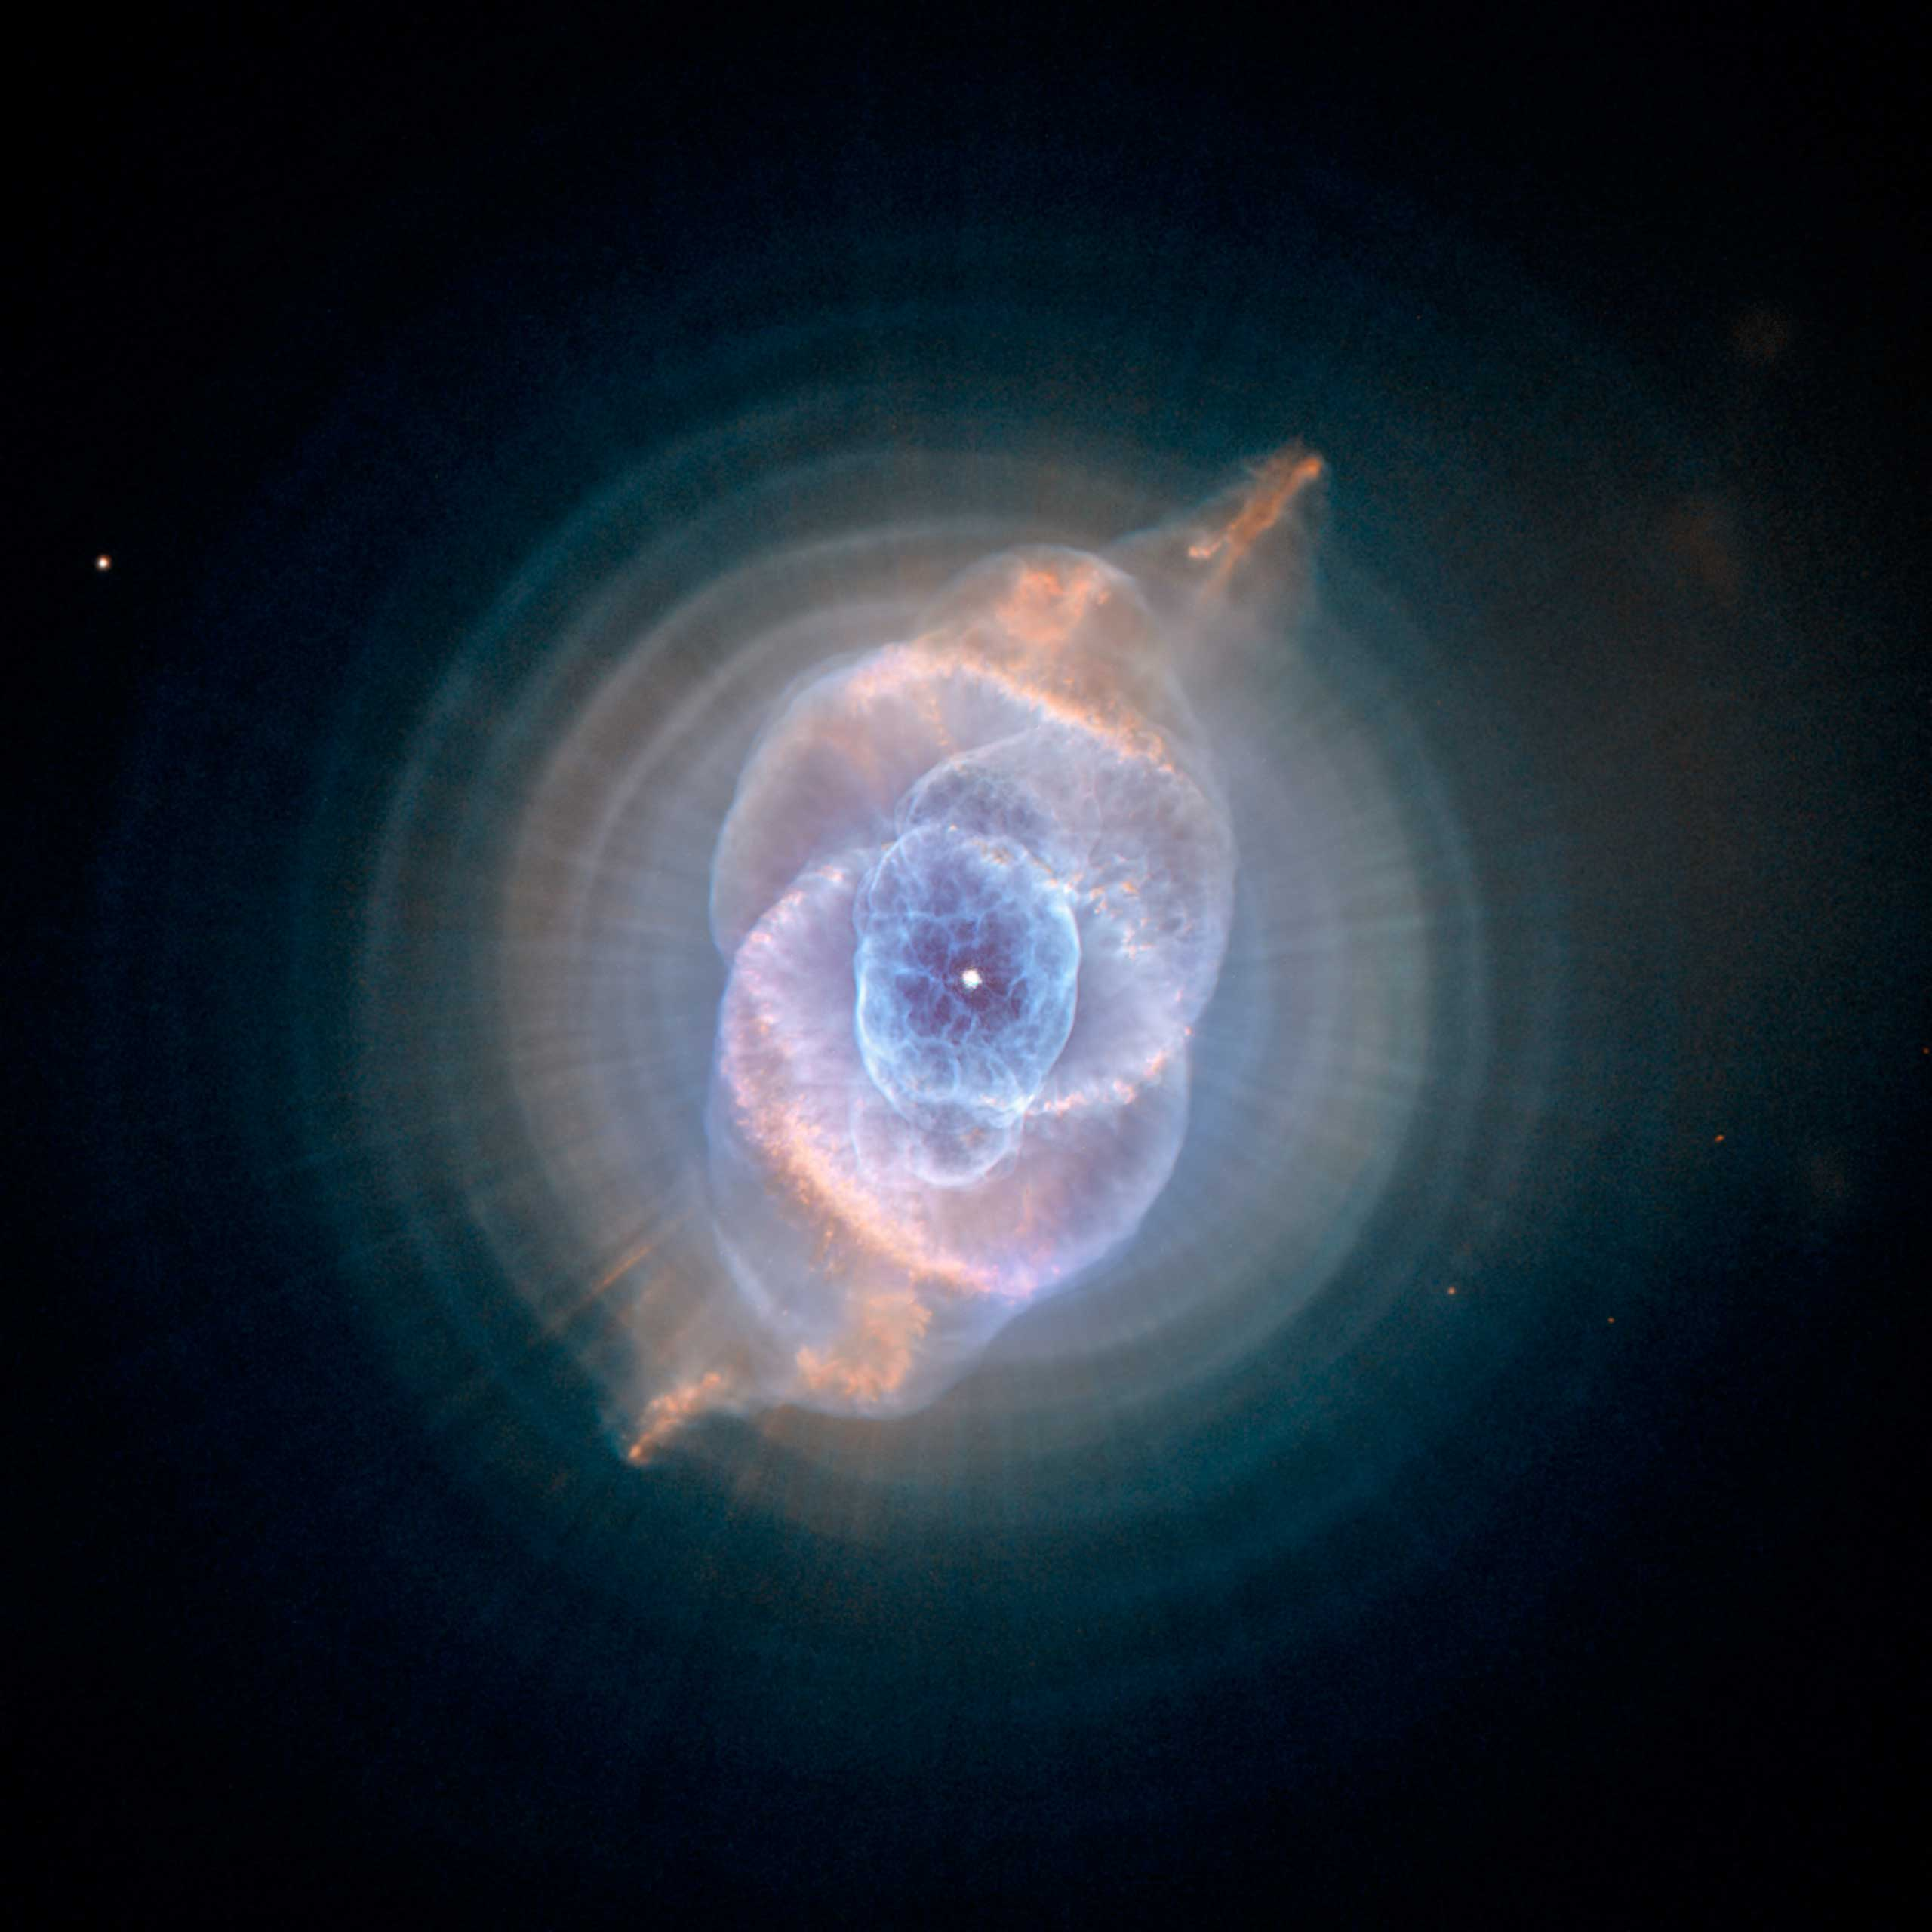 <strong>Cat's Eye Nebula</strong>:                                                                      One of the first planetary nebulae discovered, the Cat's Eye Nebula also has one of the most complex forms known to this kind of nebula. Eleven rings, or shells, of gas make up the Cat's Eye.                                                                      <i>Image released on Sept. 9, 2004</i>